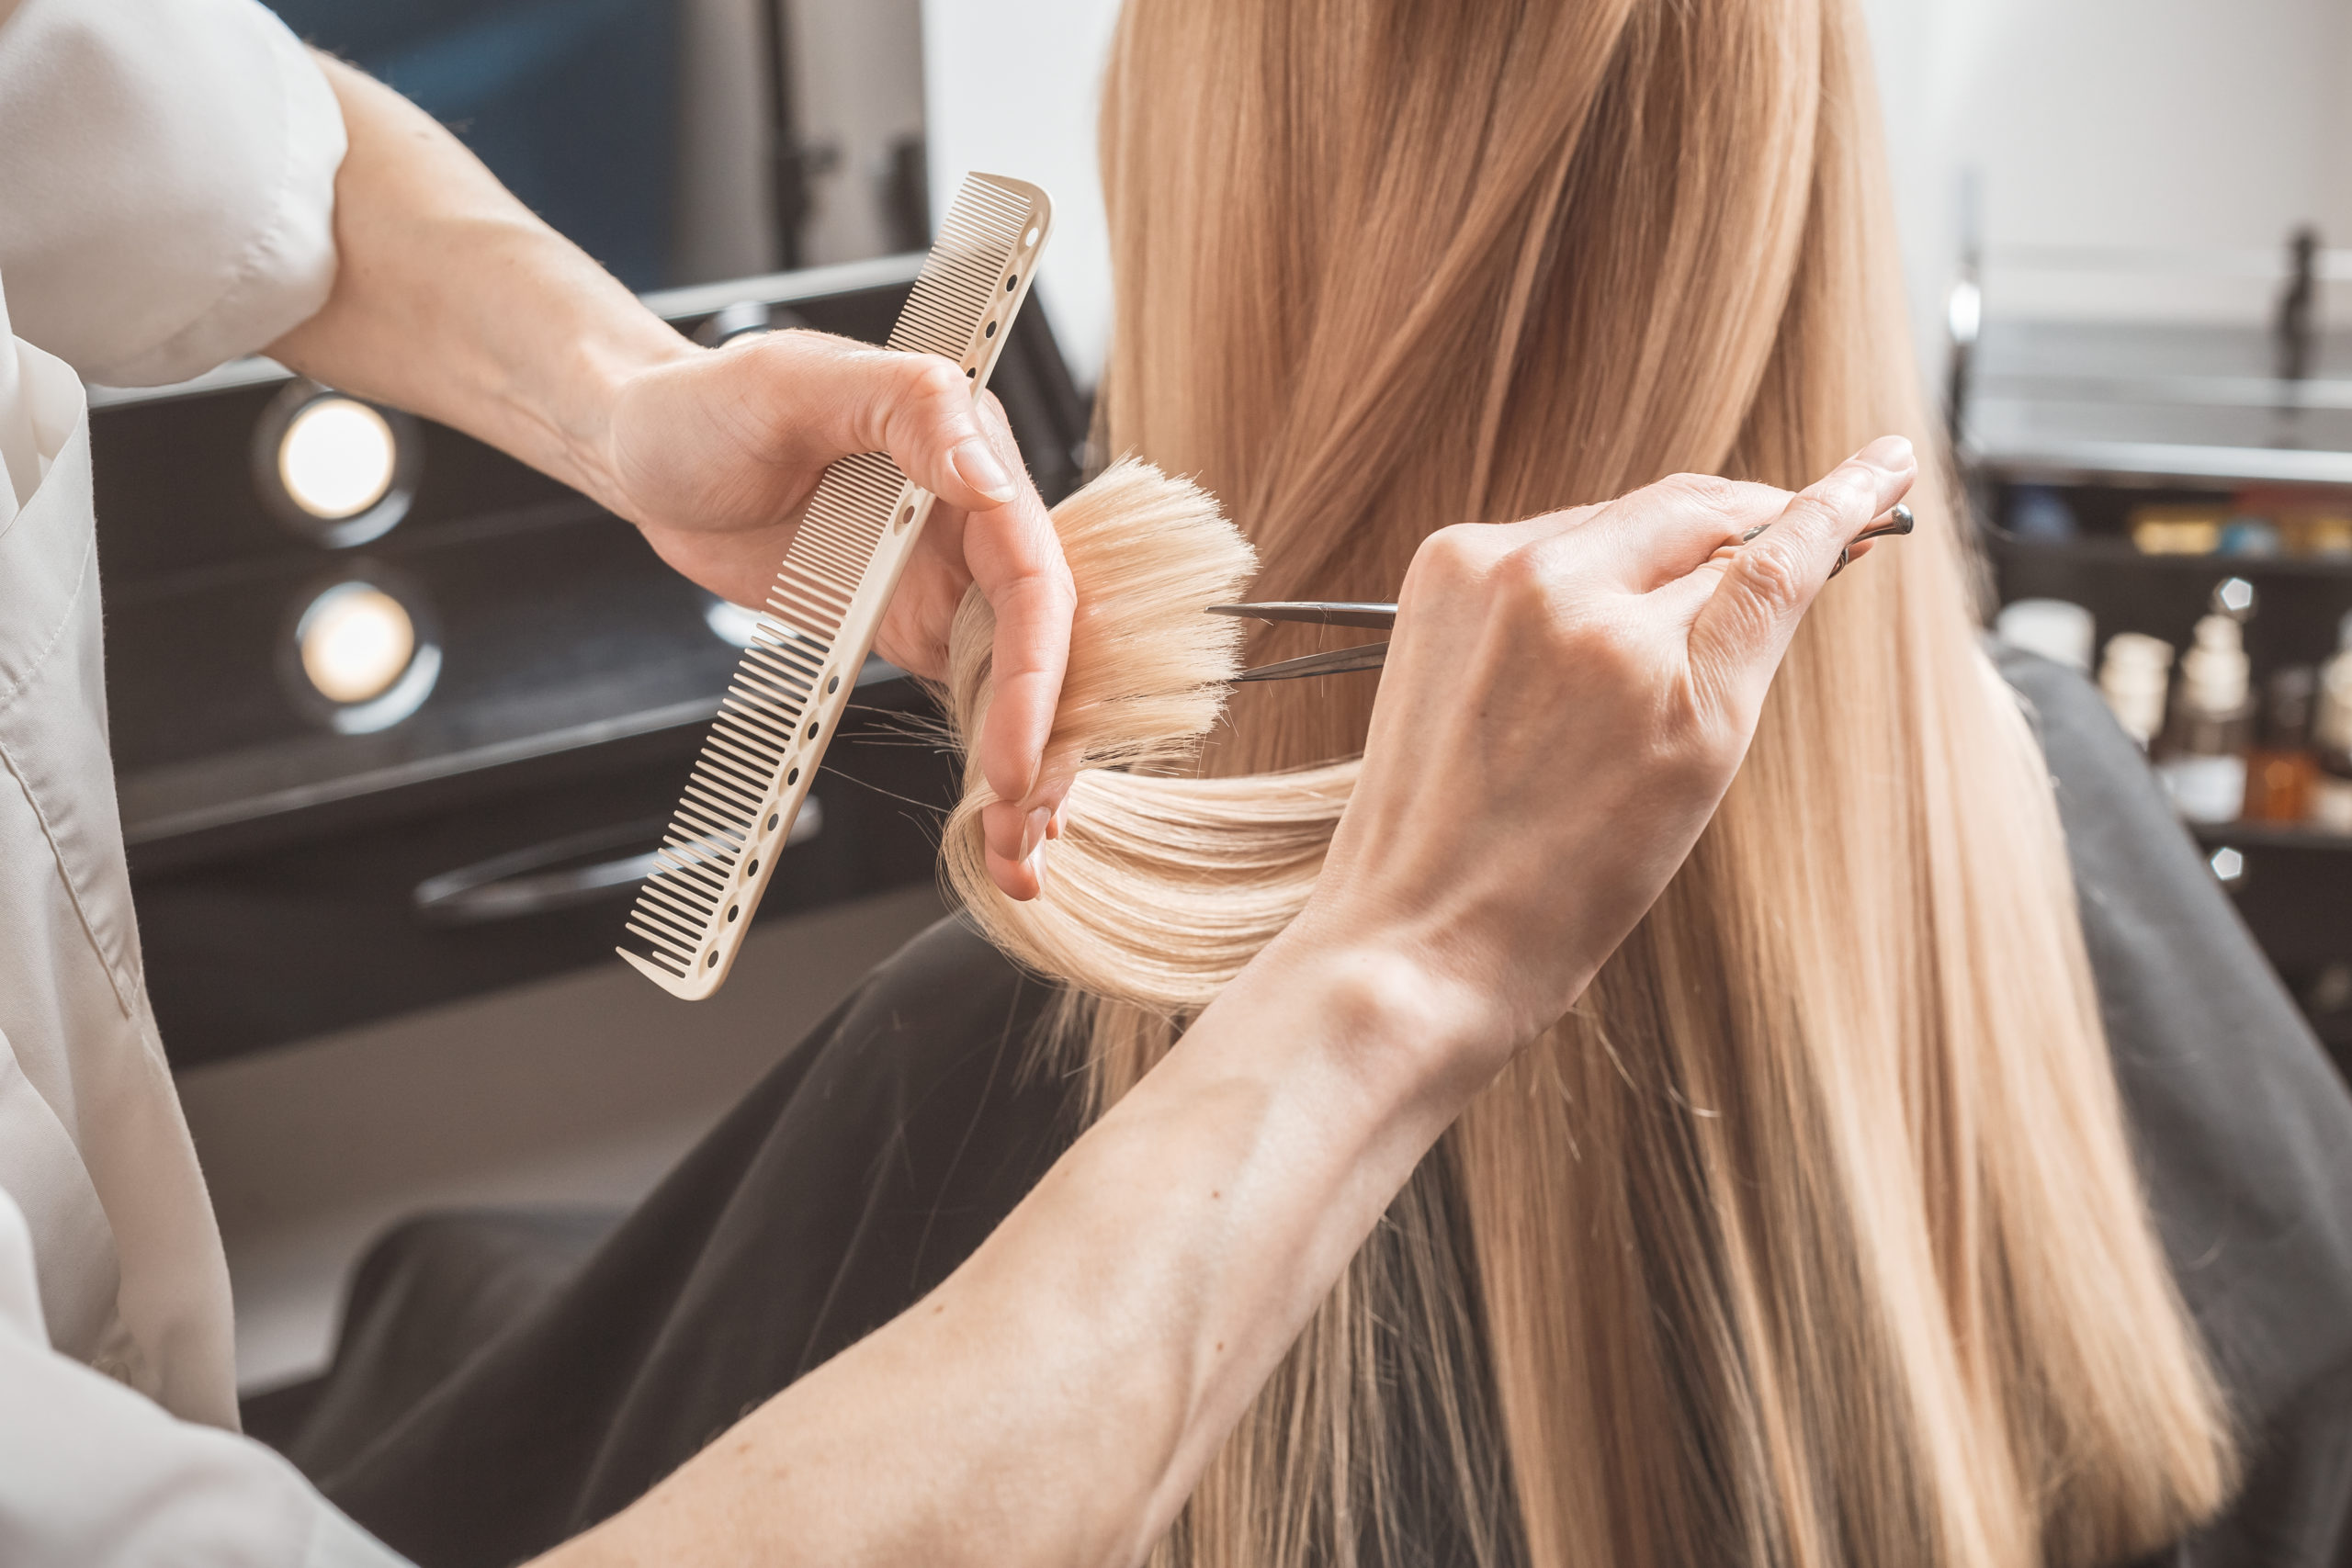 Hairdresser Cutting Long Blonde Hair